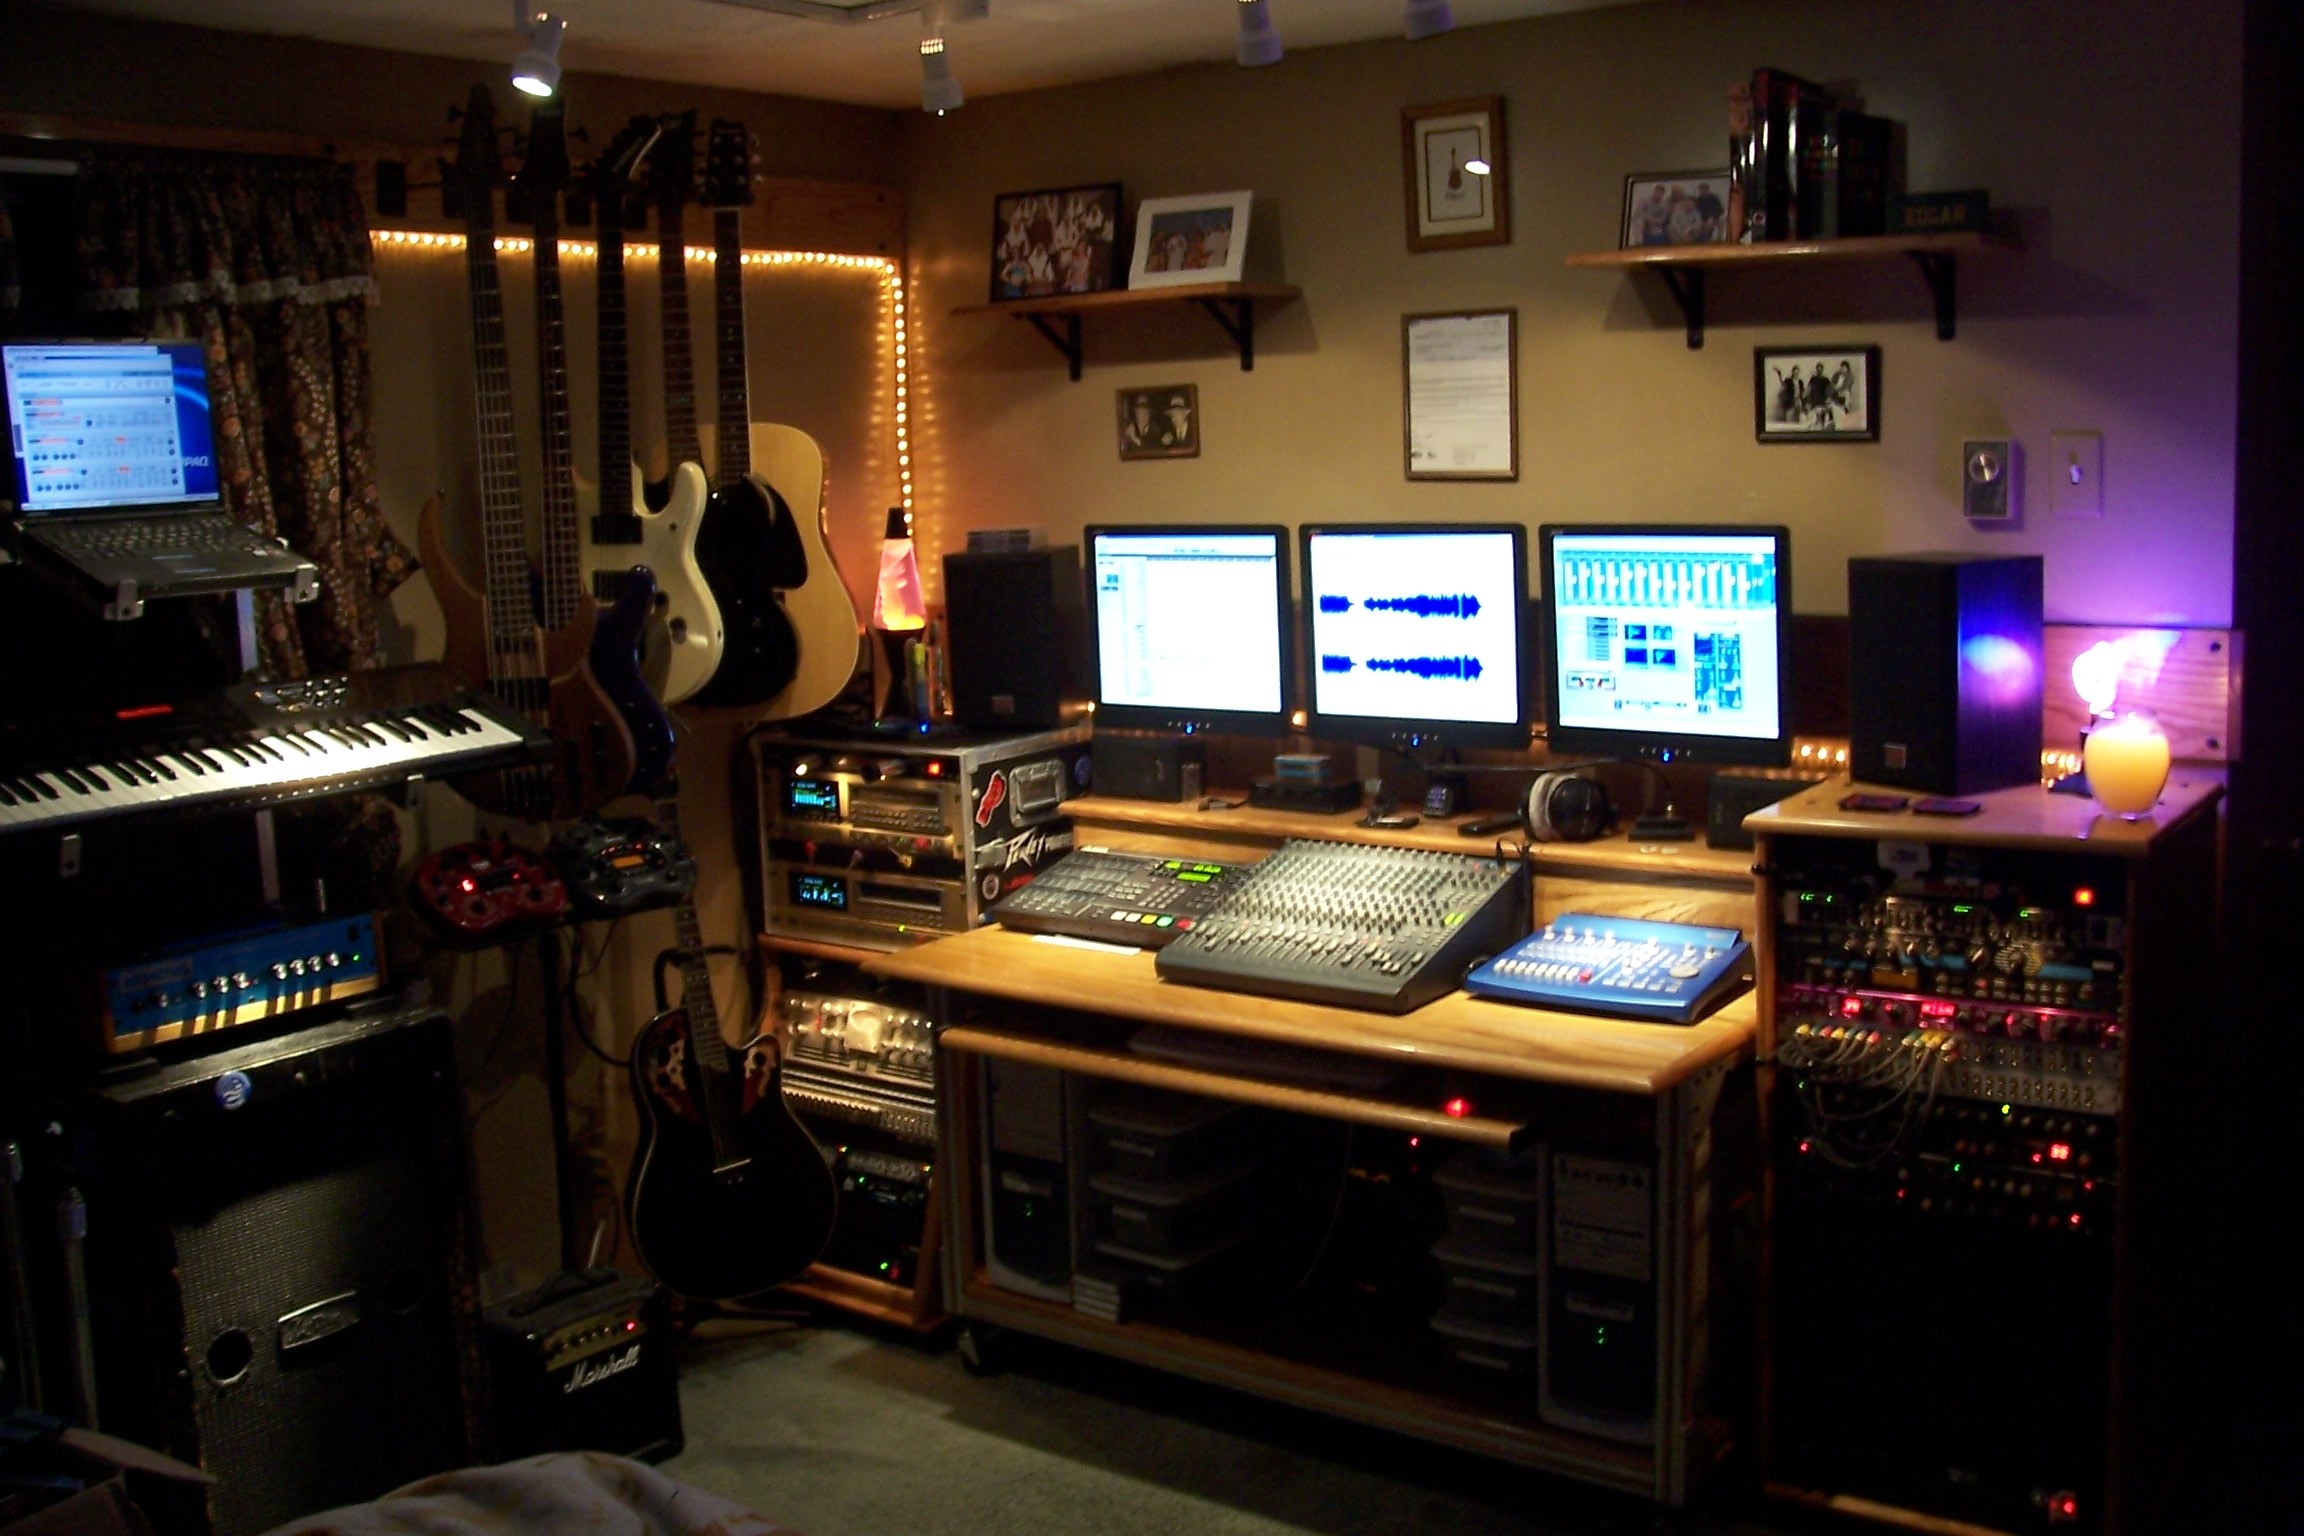 A Beginner's Guide to Home Recording Studio Equipment - Part 1